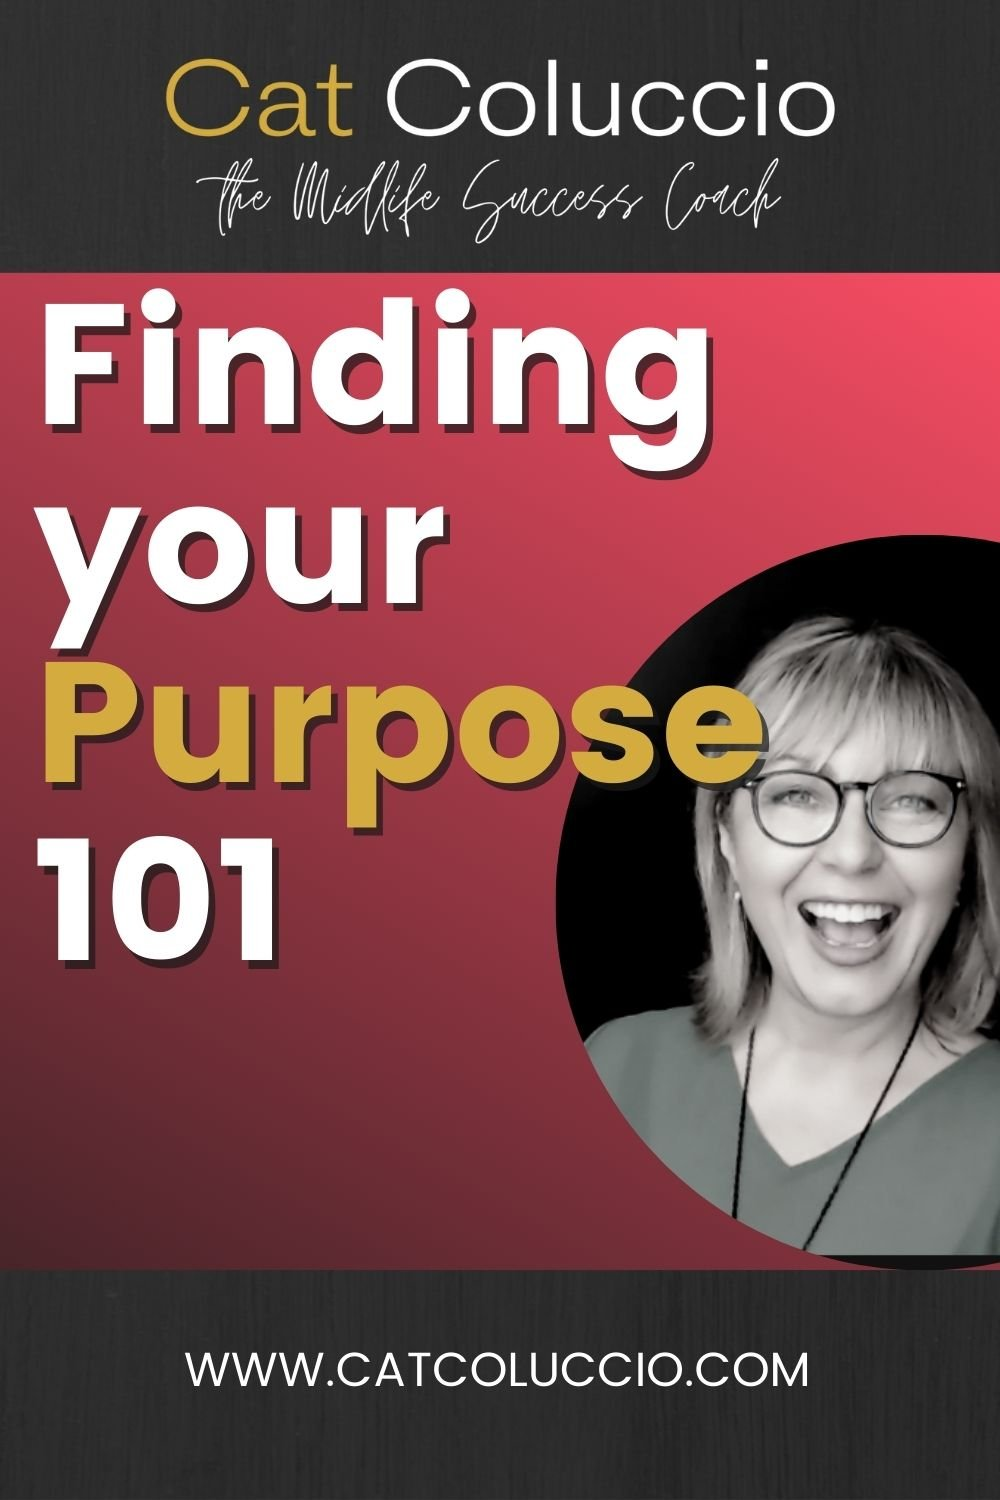 Finding your Purpose!